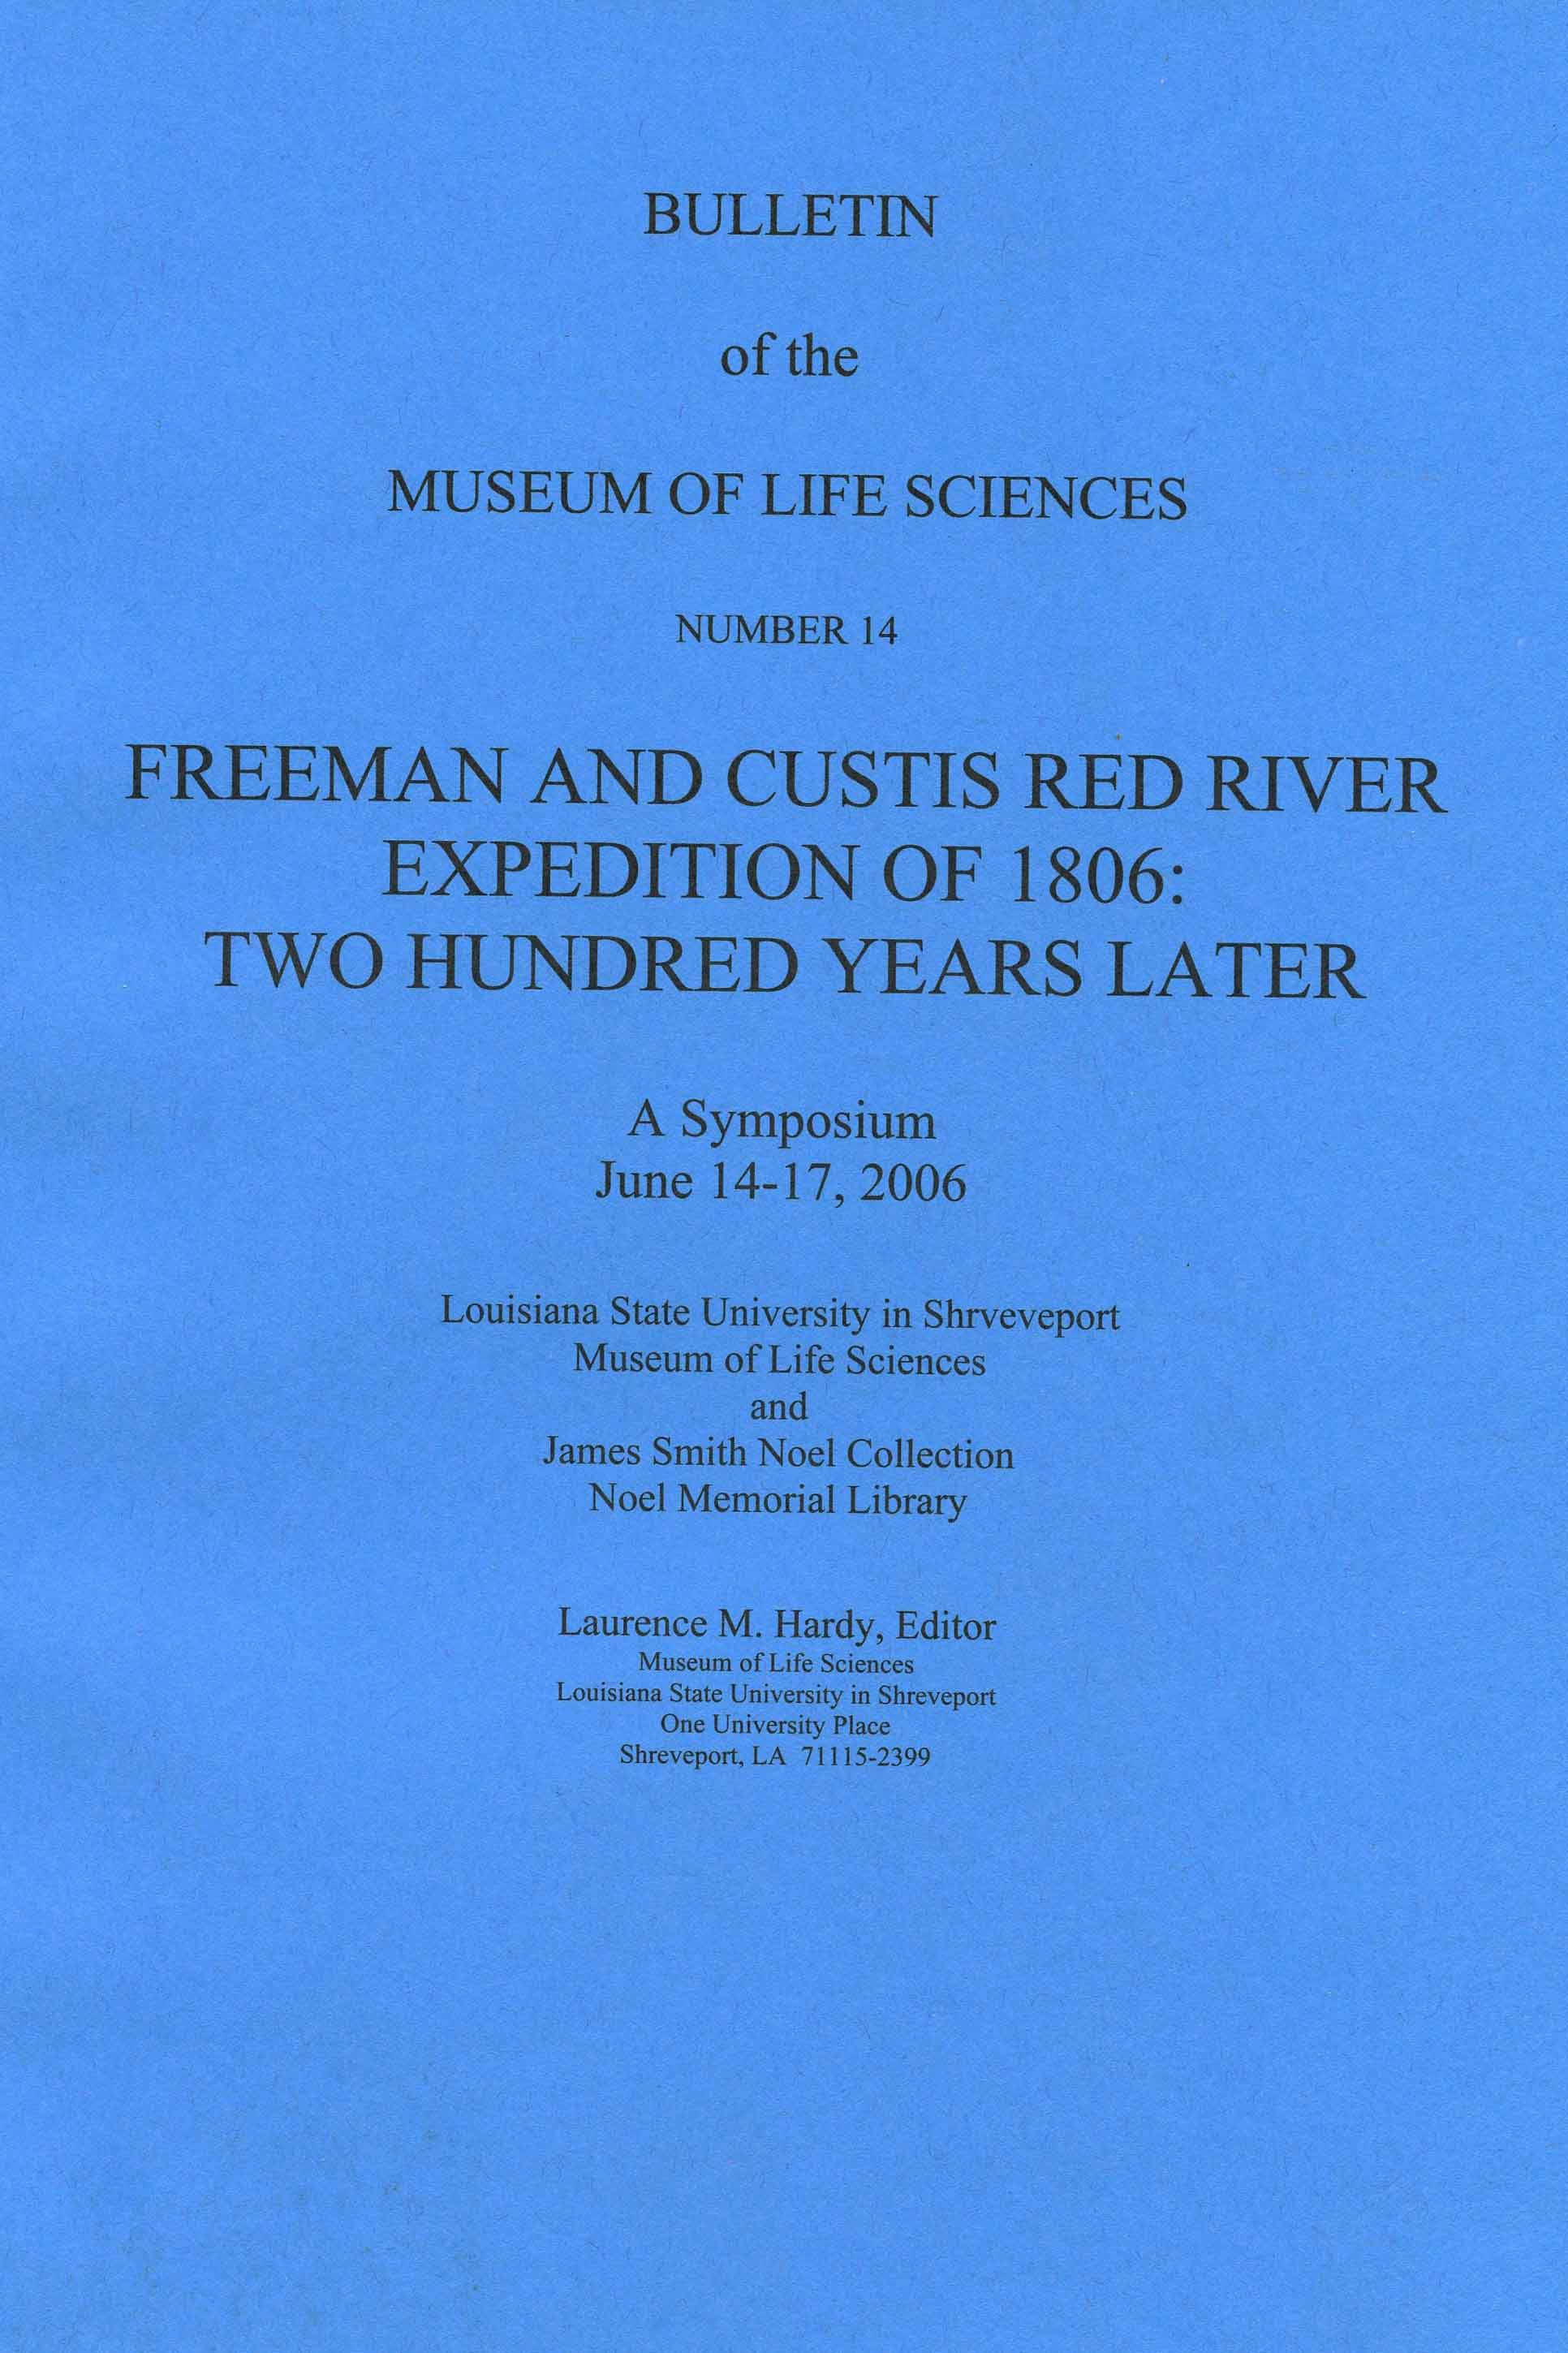 Image for Freeman and Custis Red River Expedition of 1806: Two Hundred Years Later. A Symposium, June 14-17, 2006